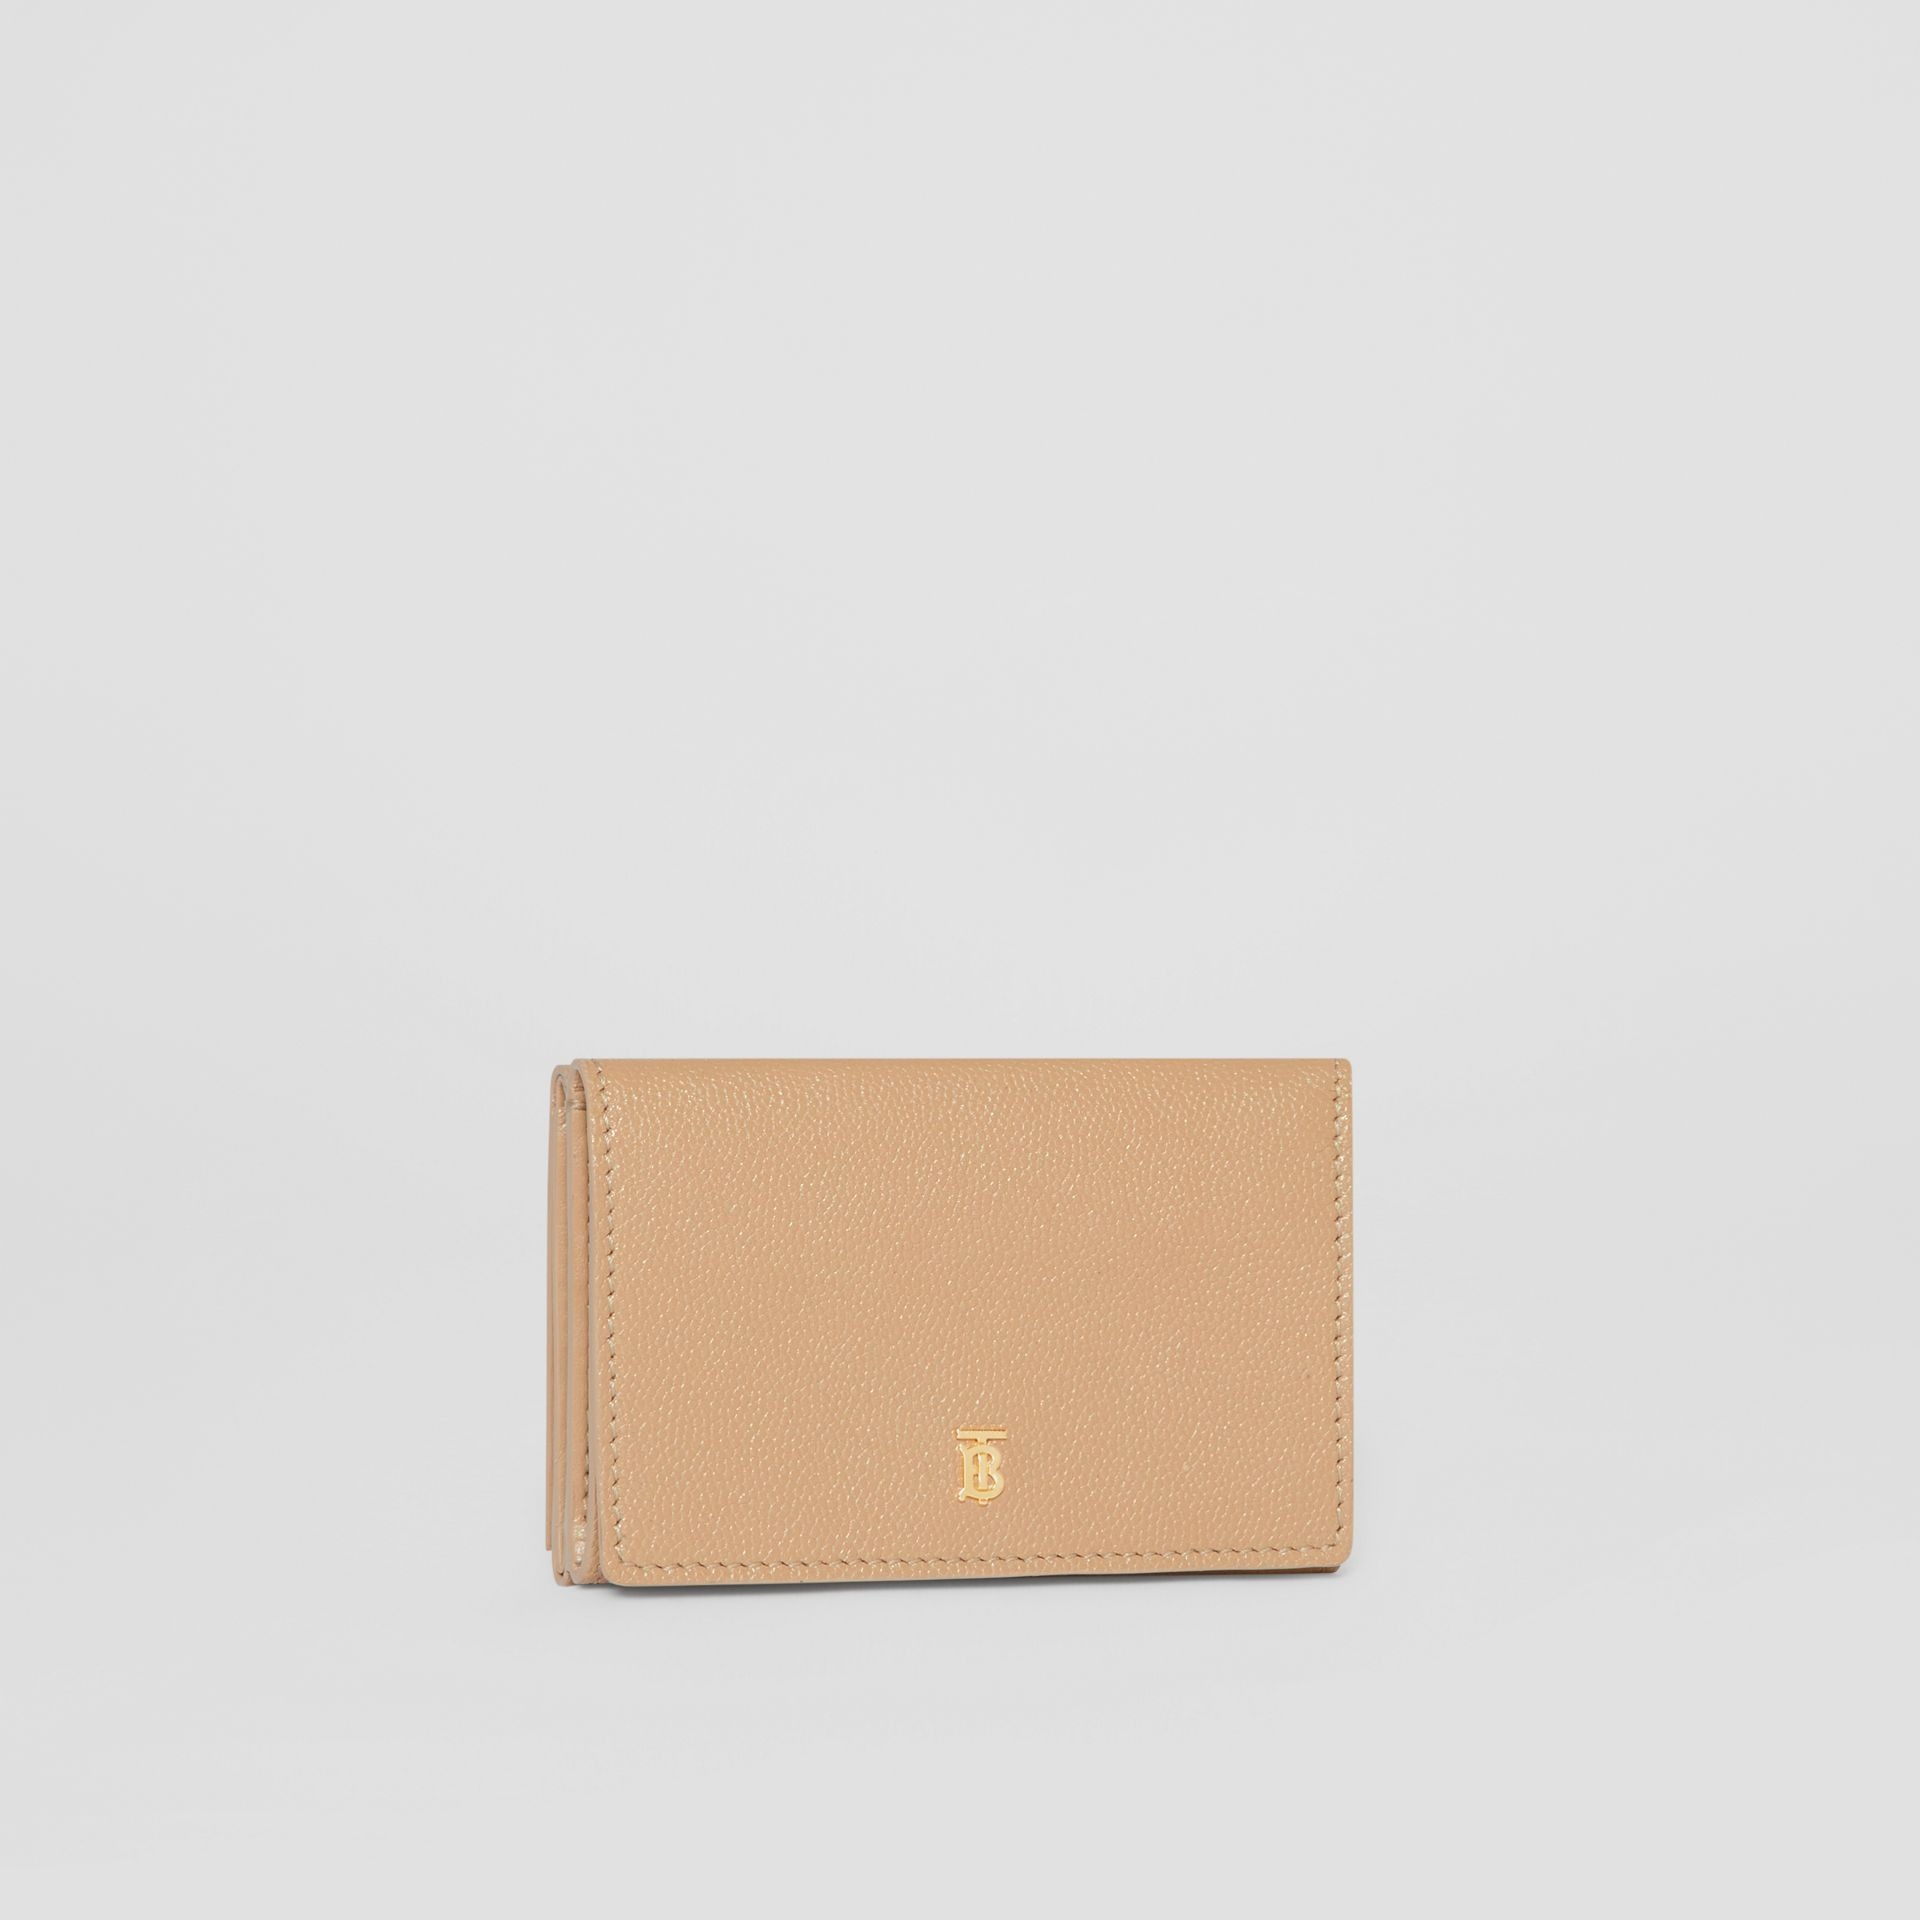 Small Grainy Leather Folding Wallet in Archive Beige - Women | Burberry Australia - gallery image 3